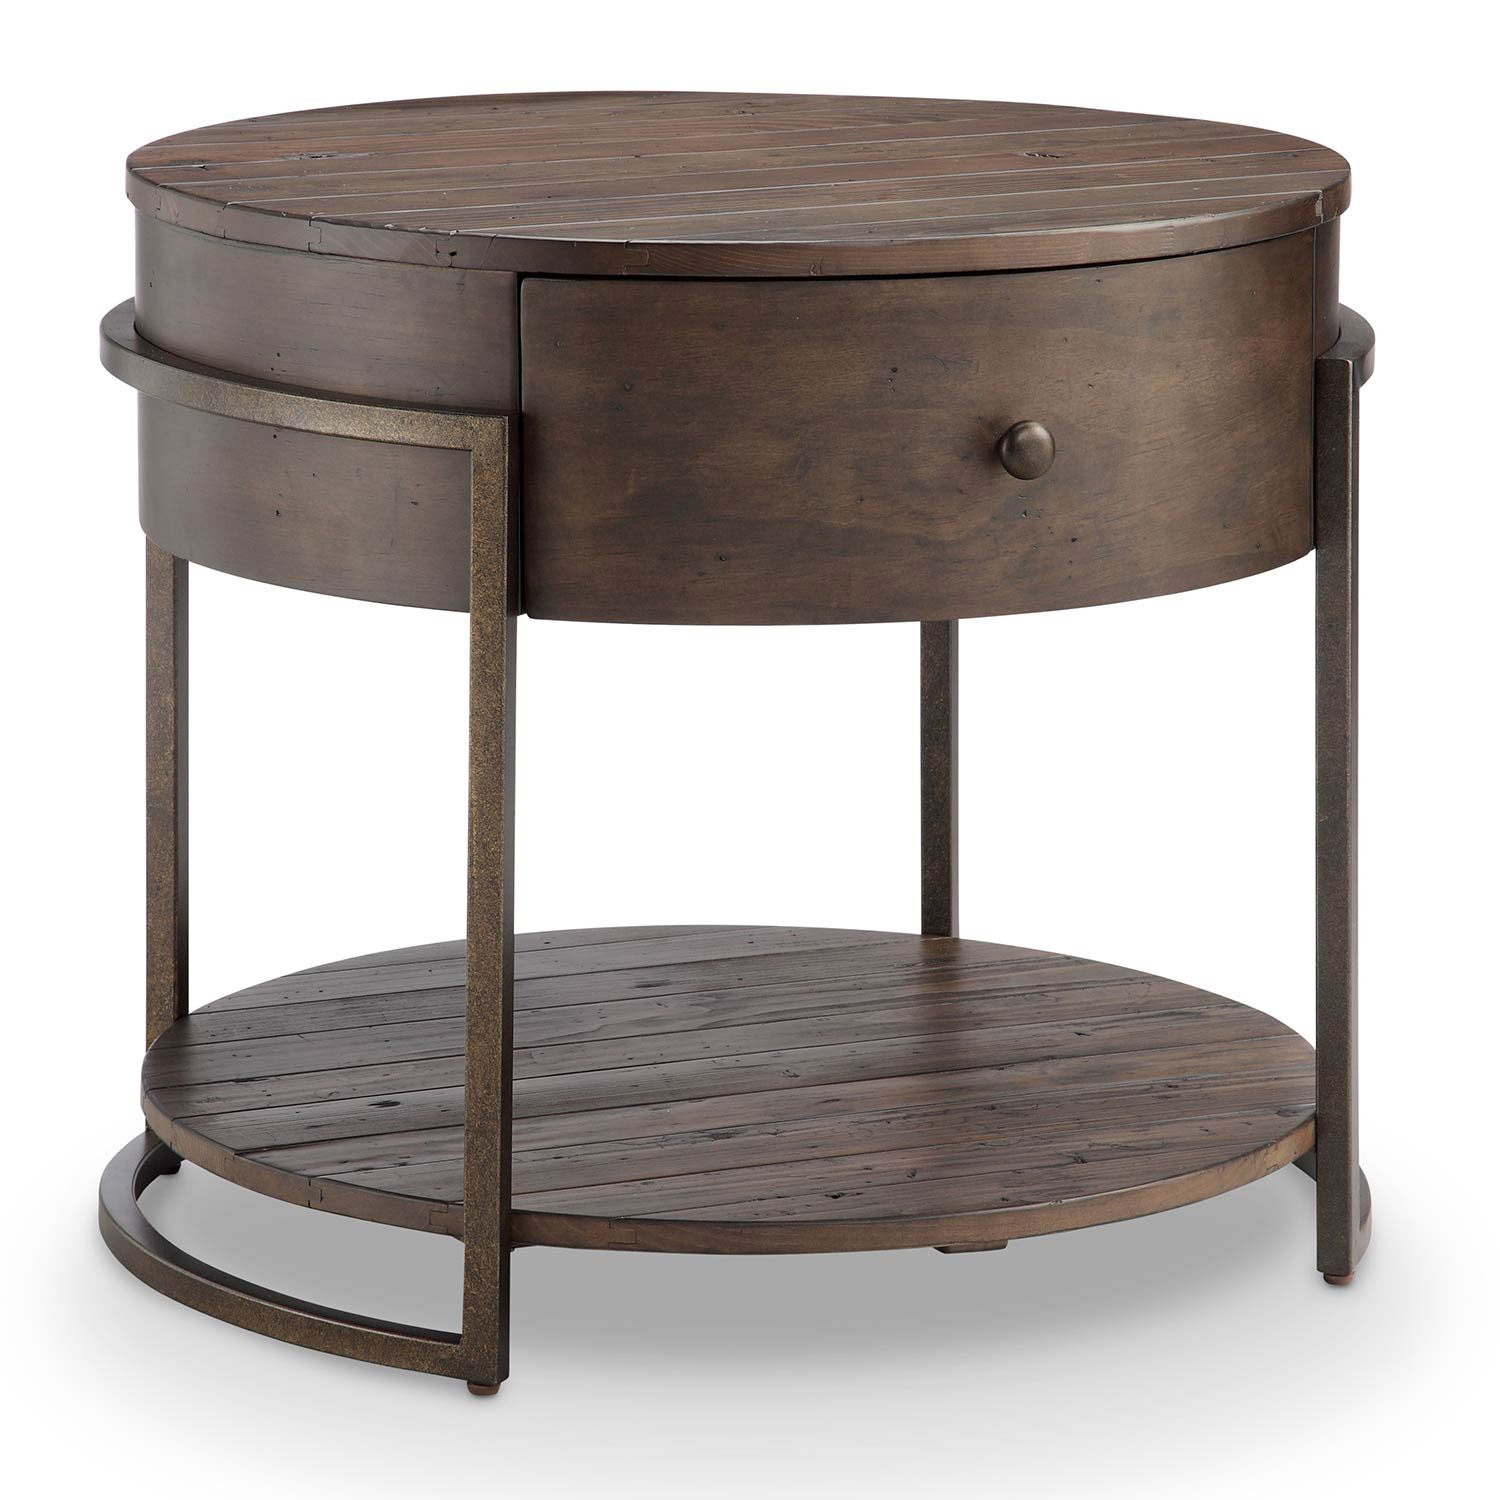 first fulton rustic dark whiskey reclaimed wood round accent table metal hover zoom half circle hall end tables garden furniture small outdoor ikea white coffee skinny sofa side